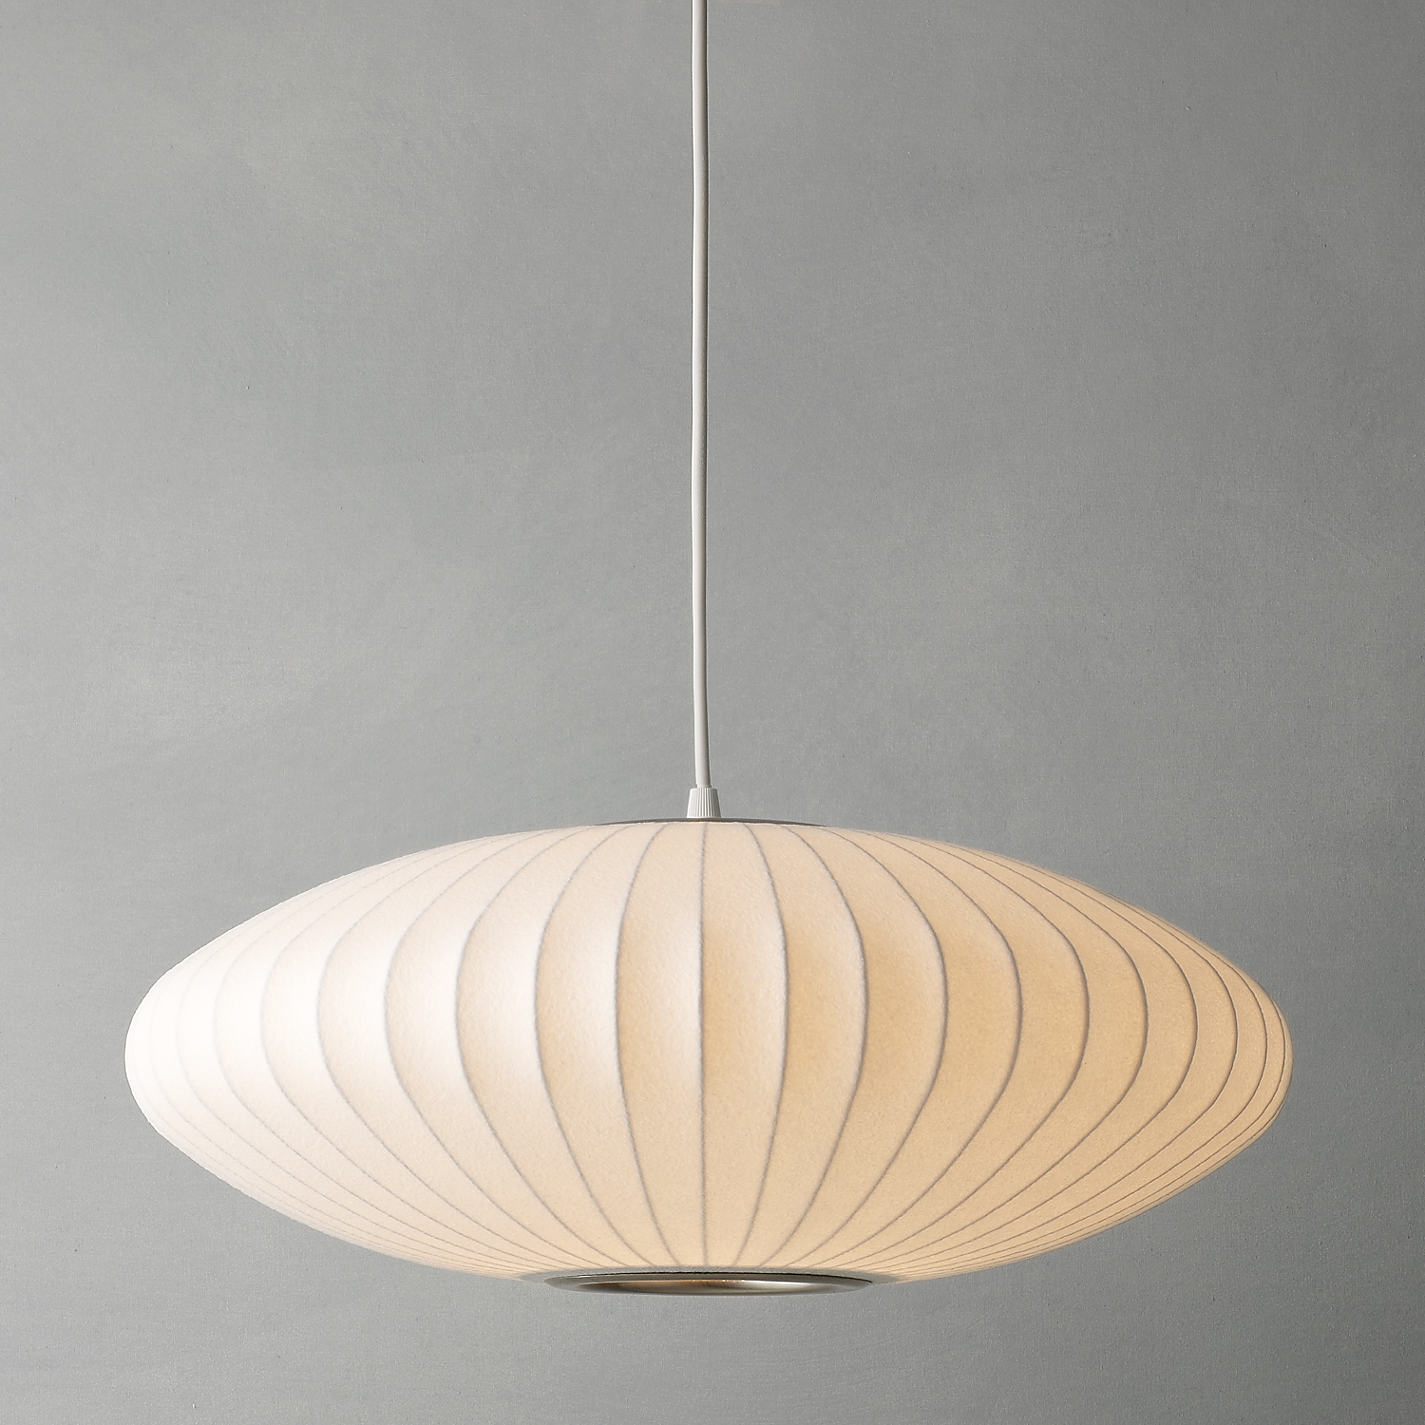 Saucer lights by george nelson moderndesigninterior saucer lights by george nelson aloadofball Image collections